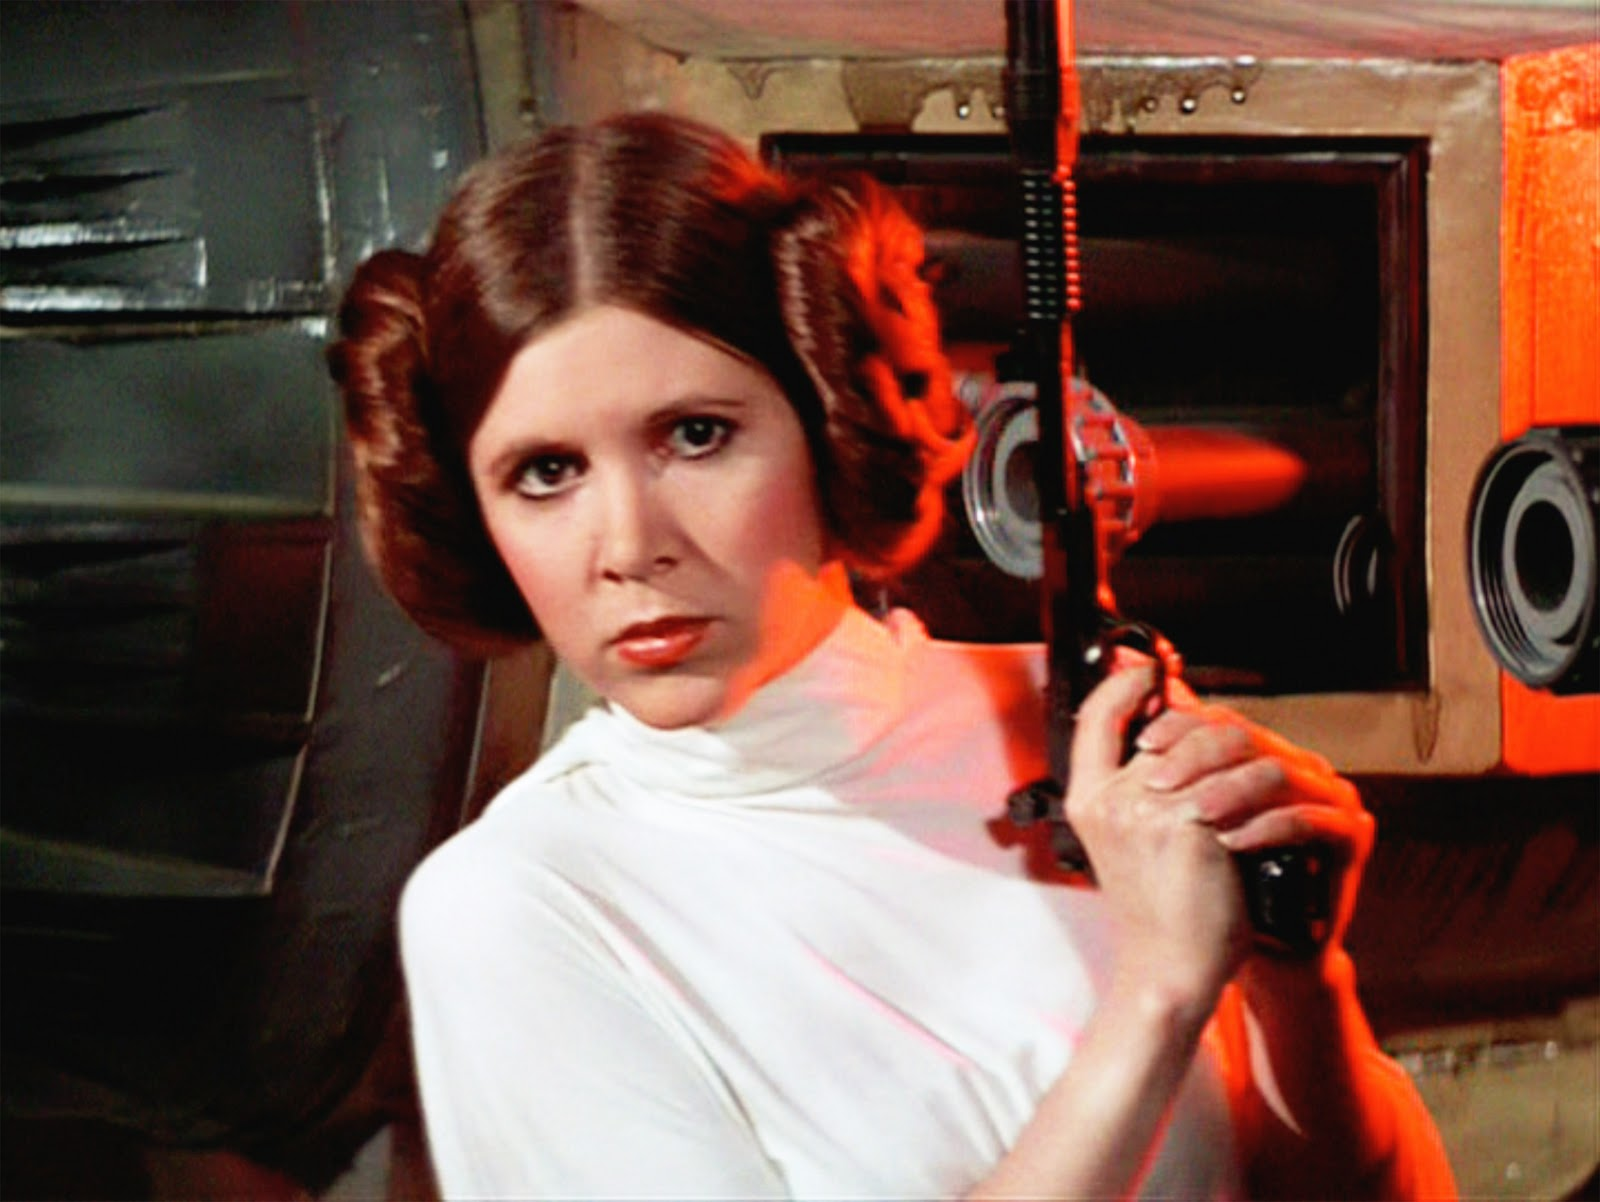 Fans are fighting for Leia to become an official Disney Princess after Carrie Fisher's death